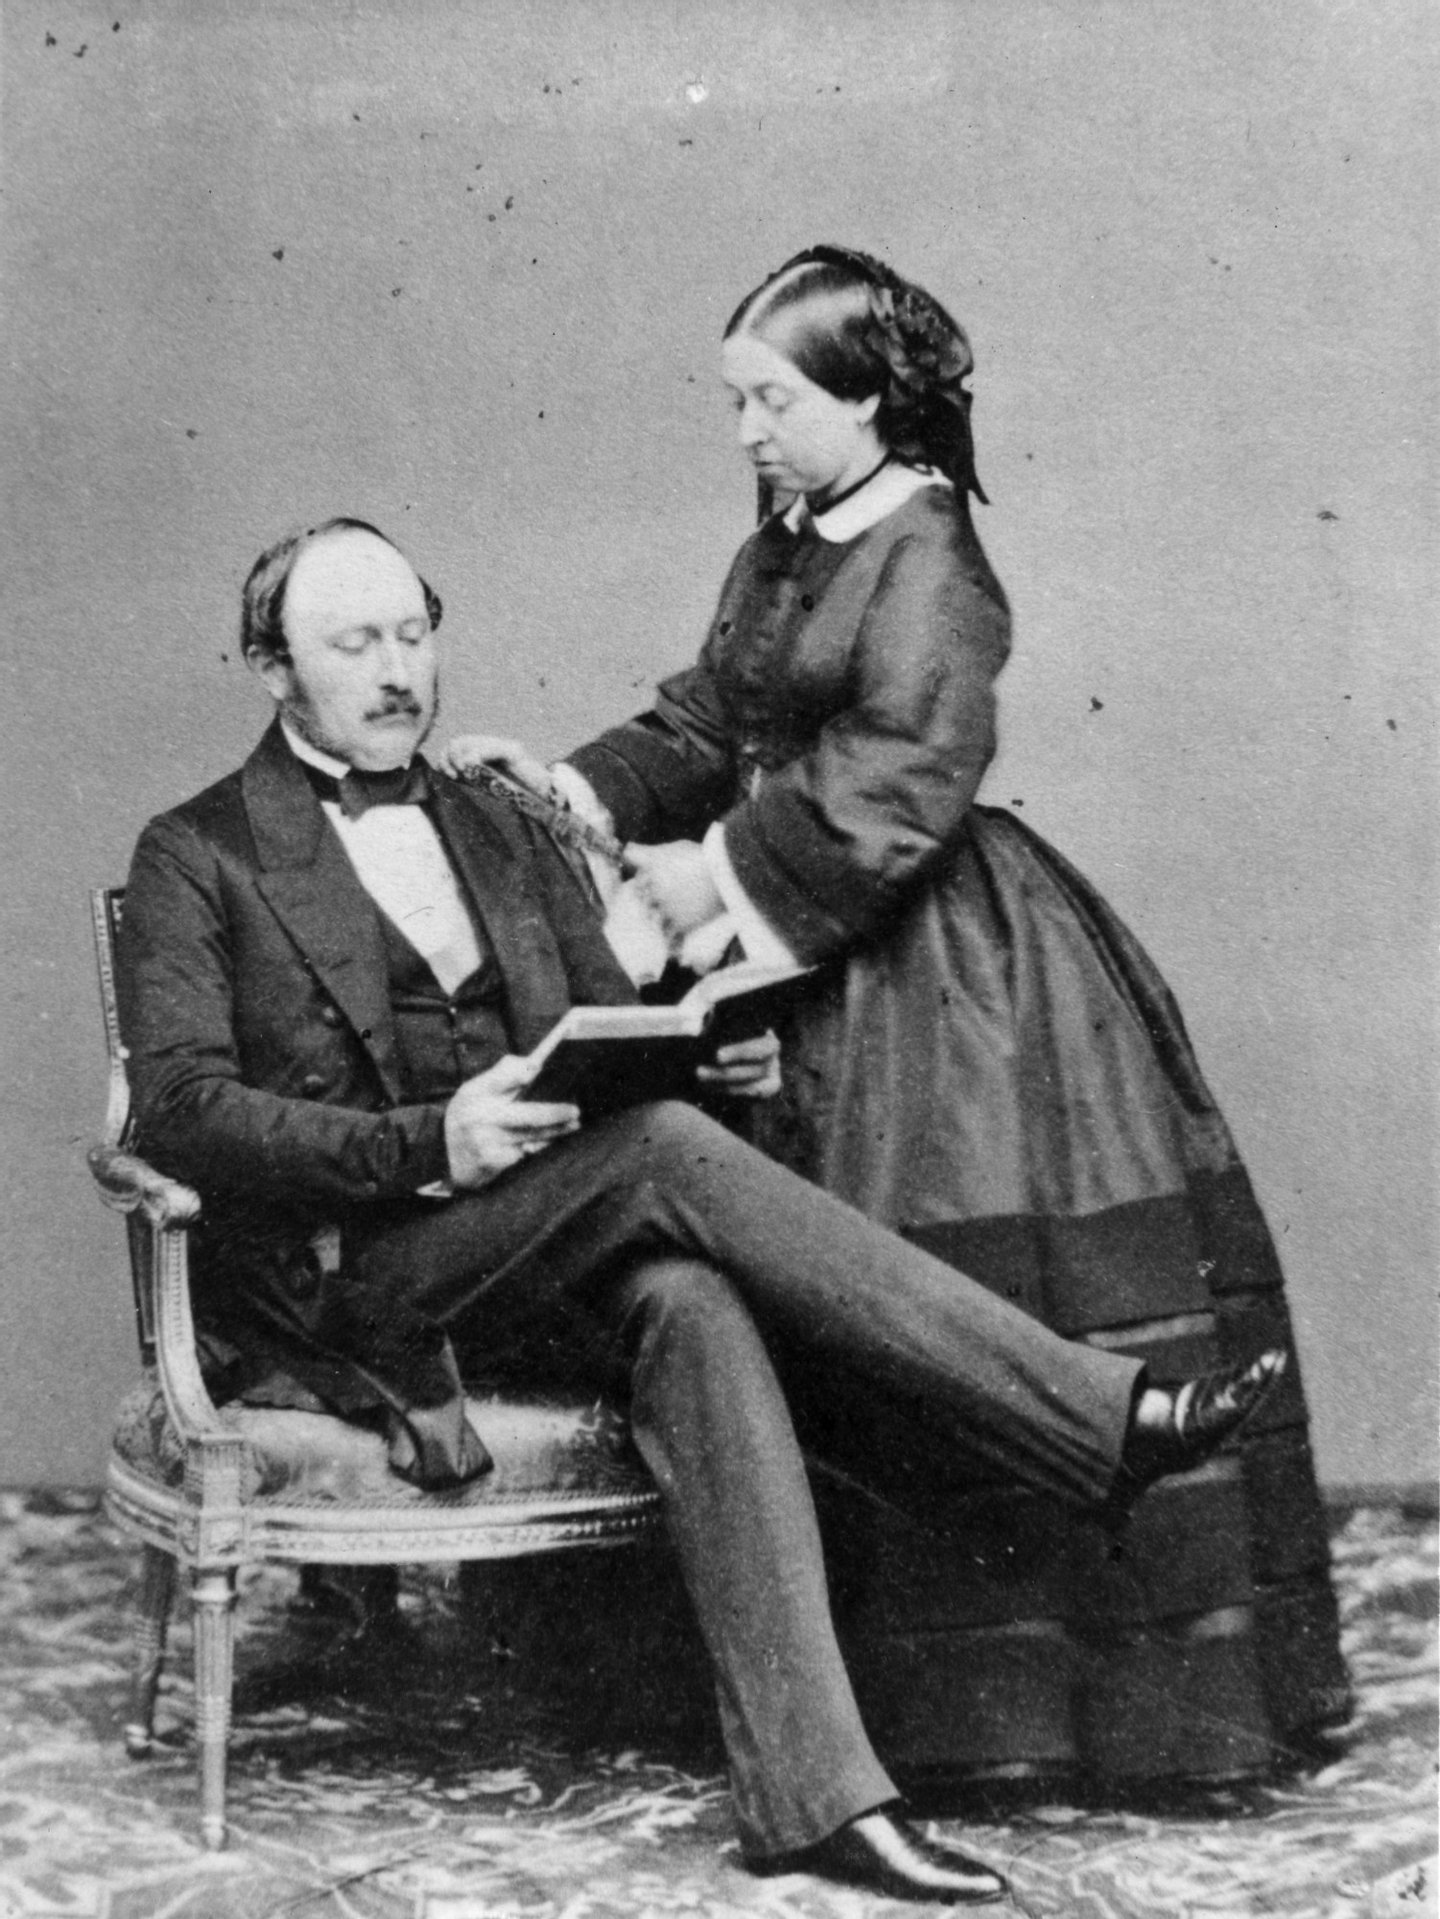 15th May 1860: Queen Victoria and her beloved Prince Albert, the Prince Consort, at Buckingham Palace. (Photo by Keystone/Getty Images)